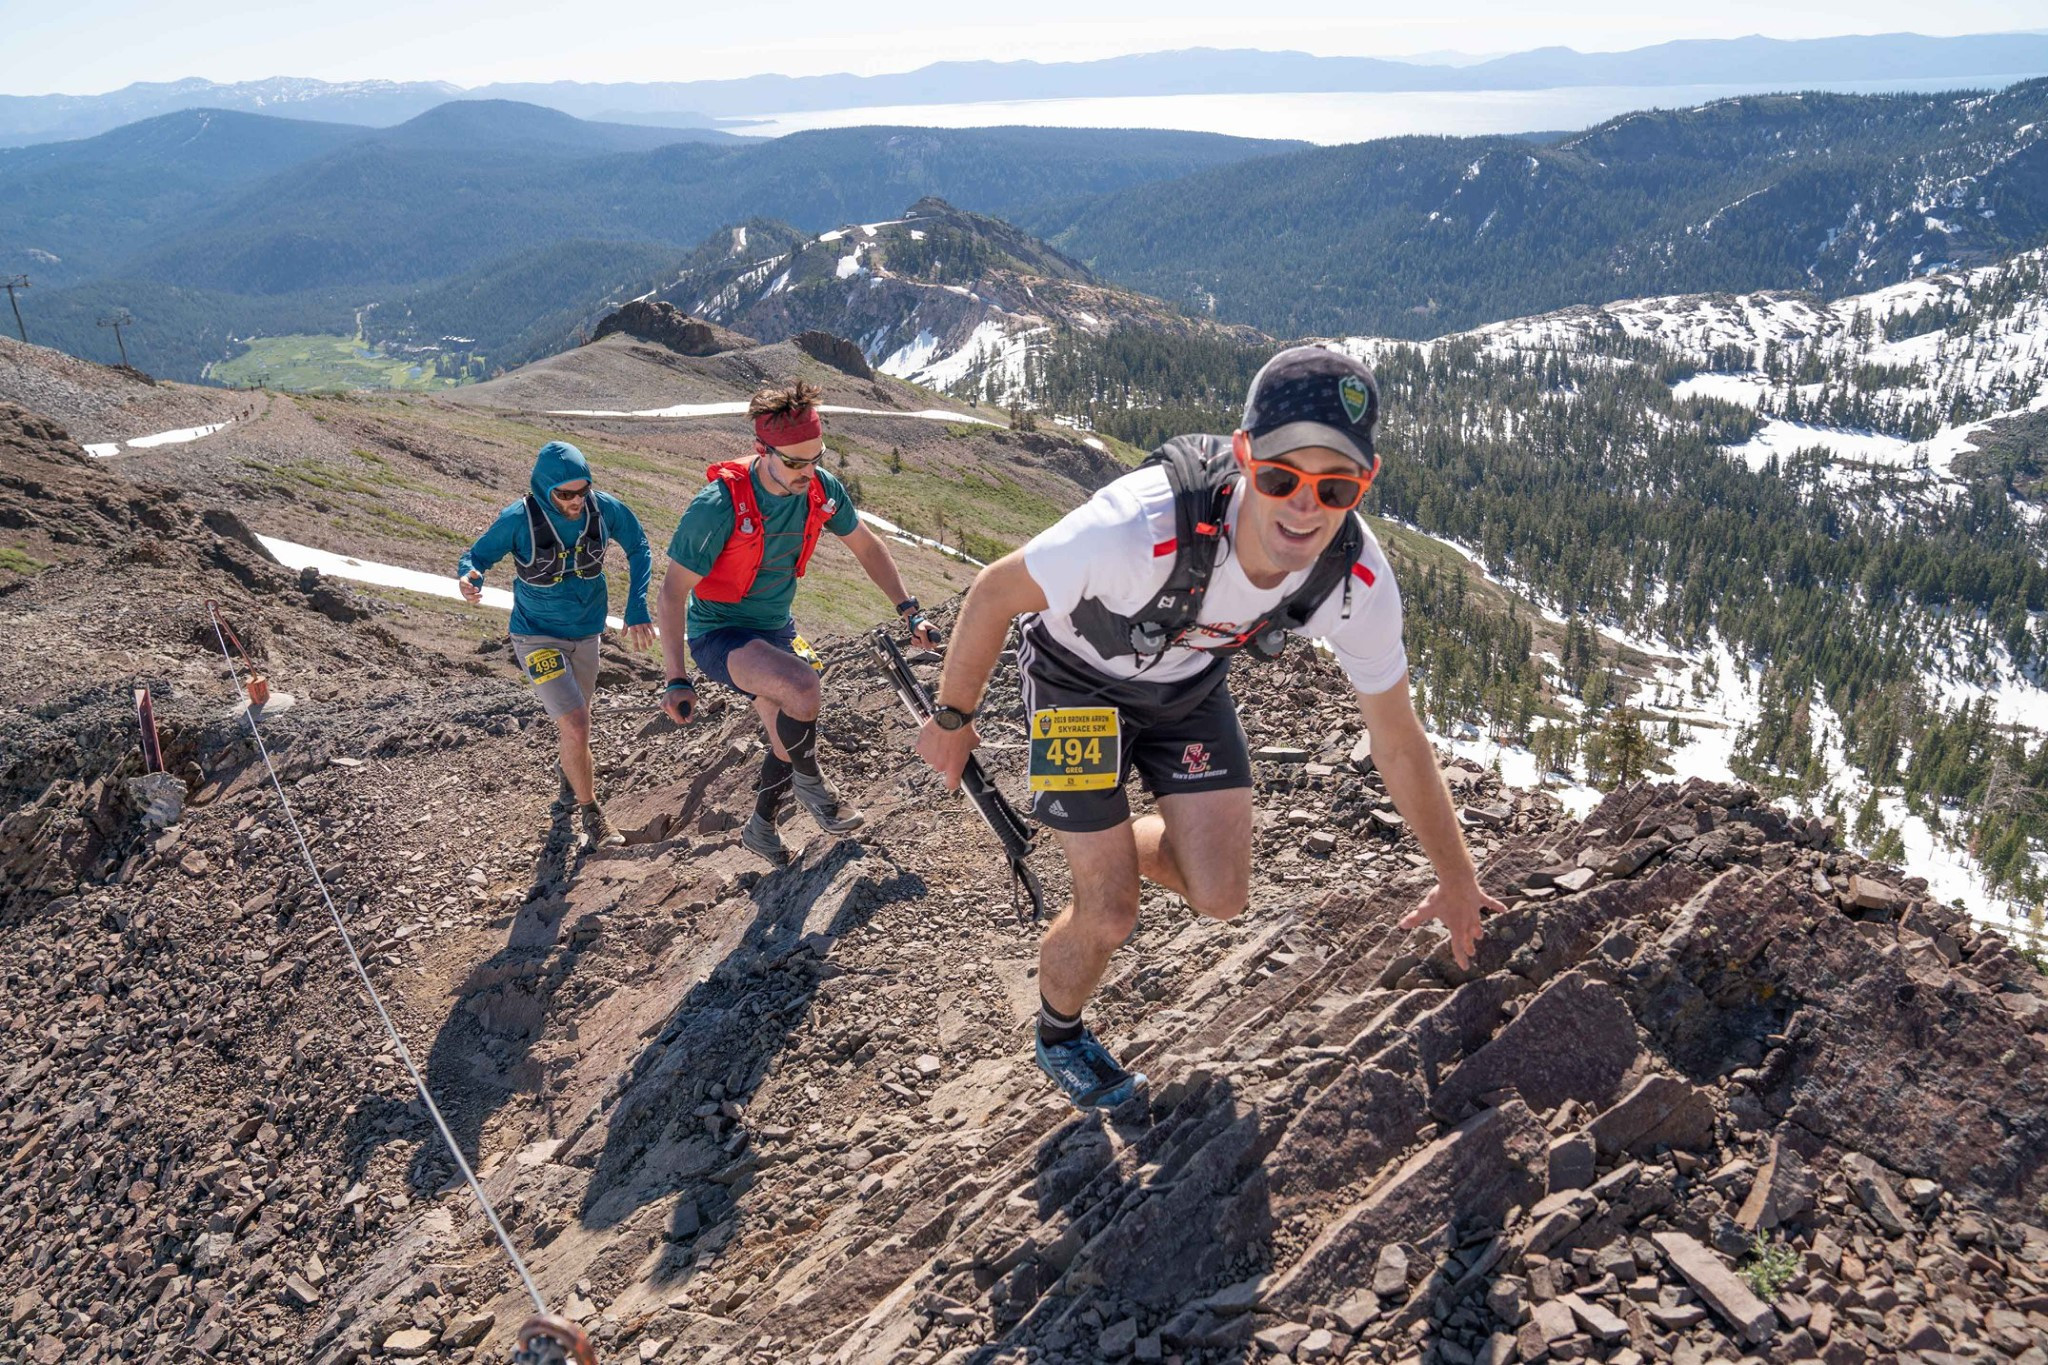 The new WMRA World Cup season is due to open with the Broken Arrow Skyrace in Squaw Valley - the only event scheduled for outside Europe ©Broken Arrow Skyrace